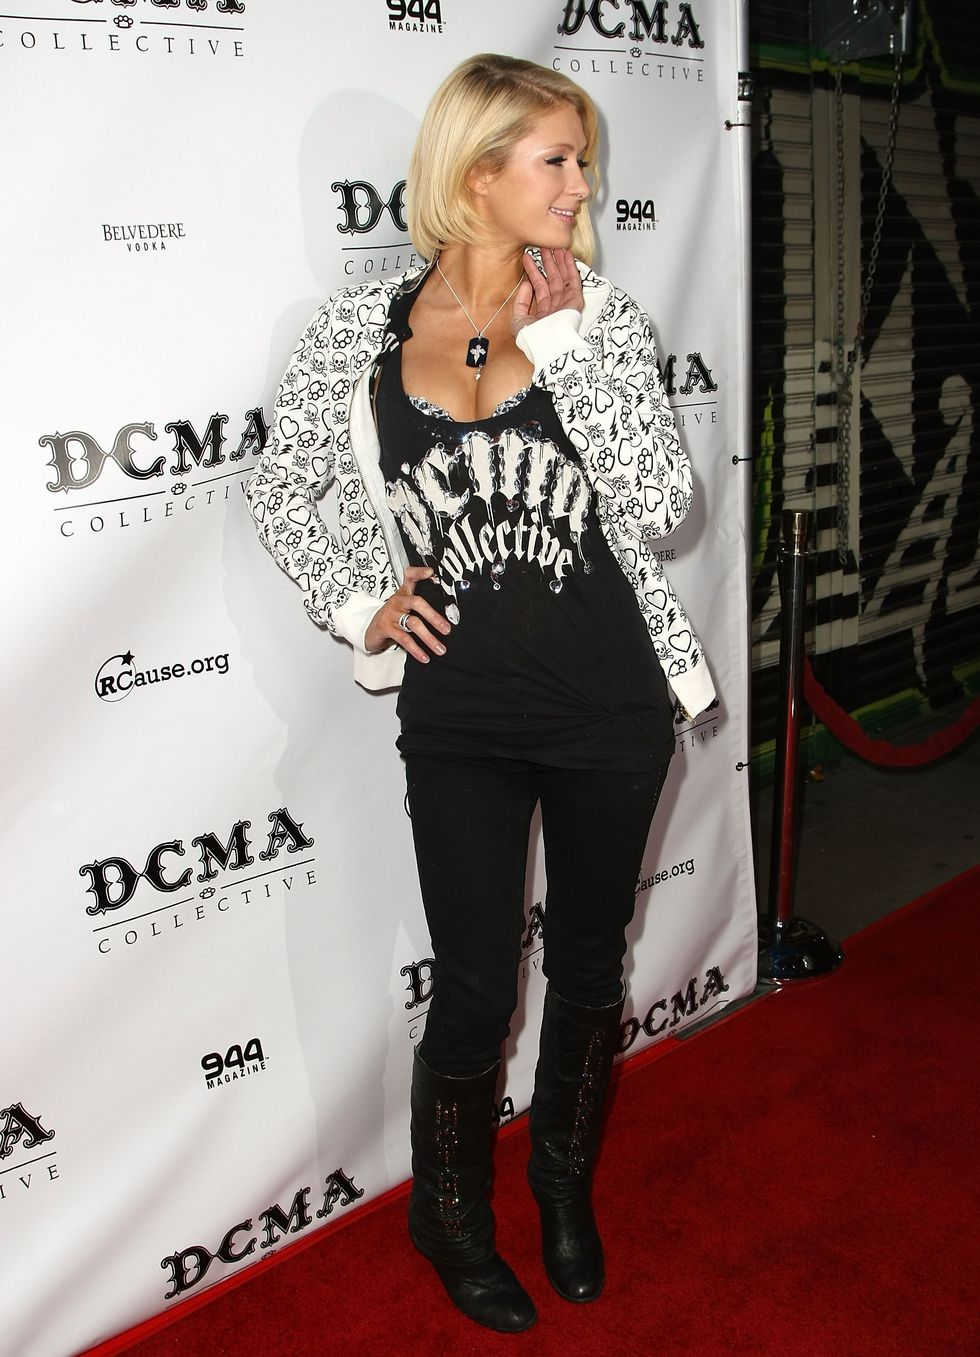 paris-hilton-dcma-collectives-flagship-store-opening-in-los-angeles-01